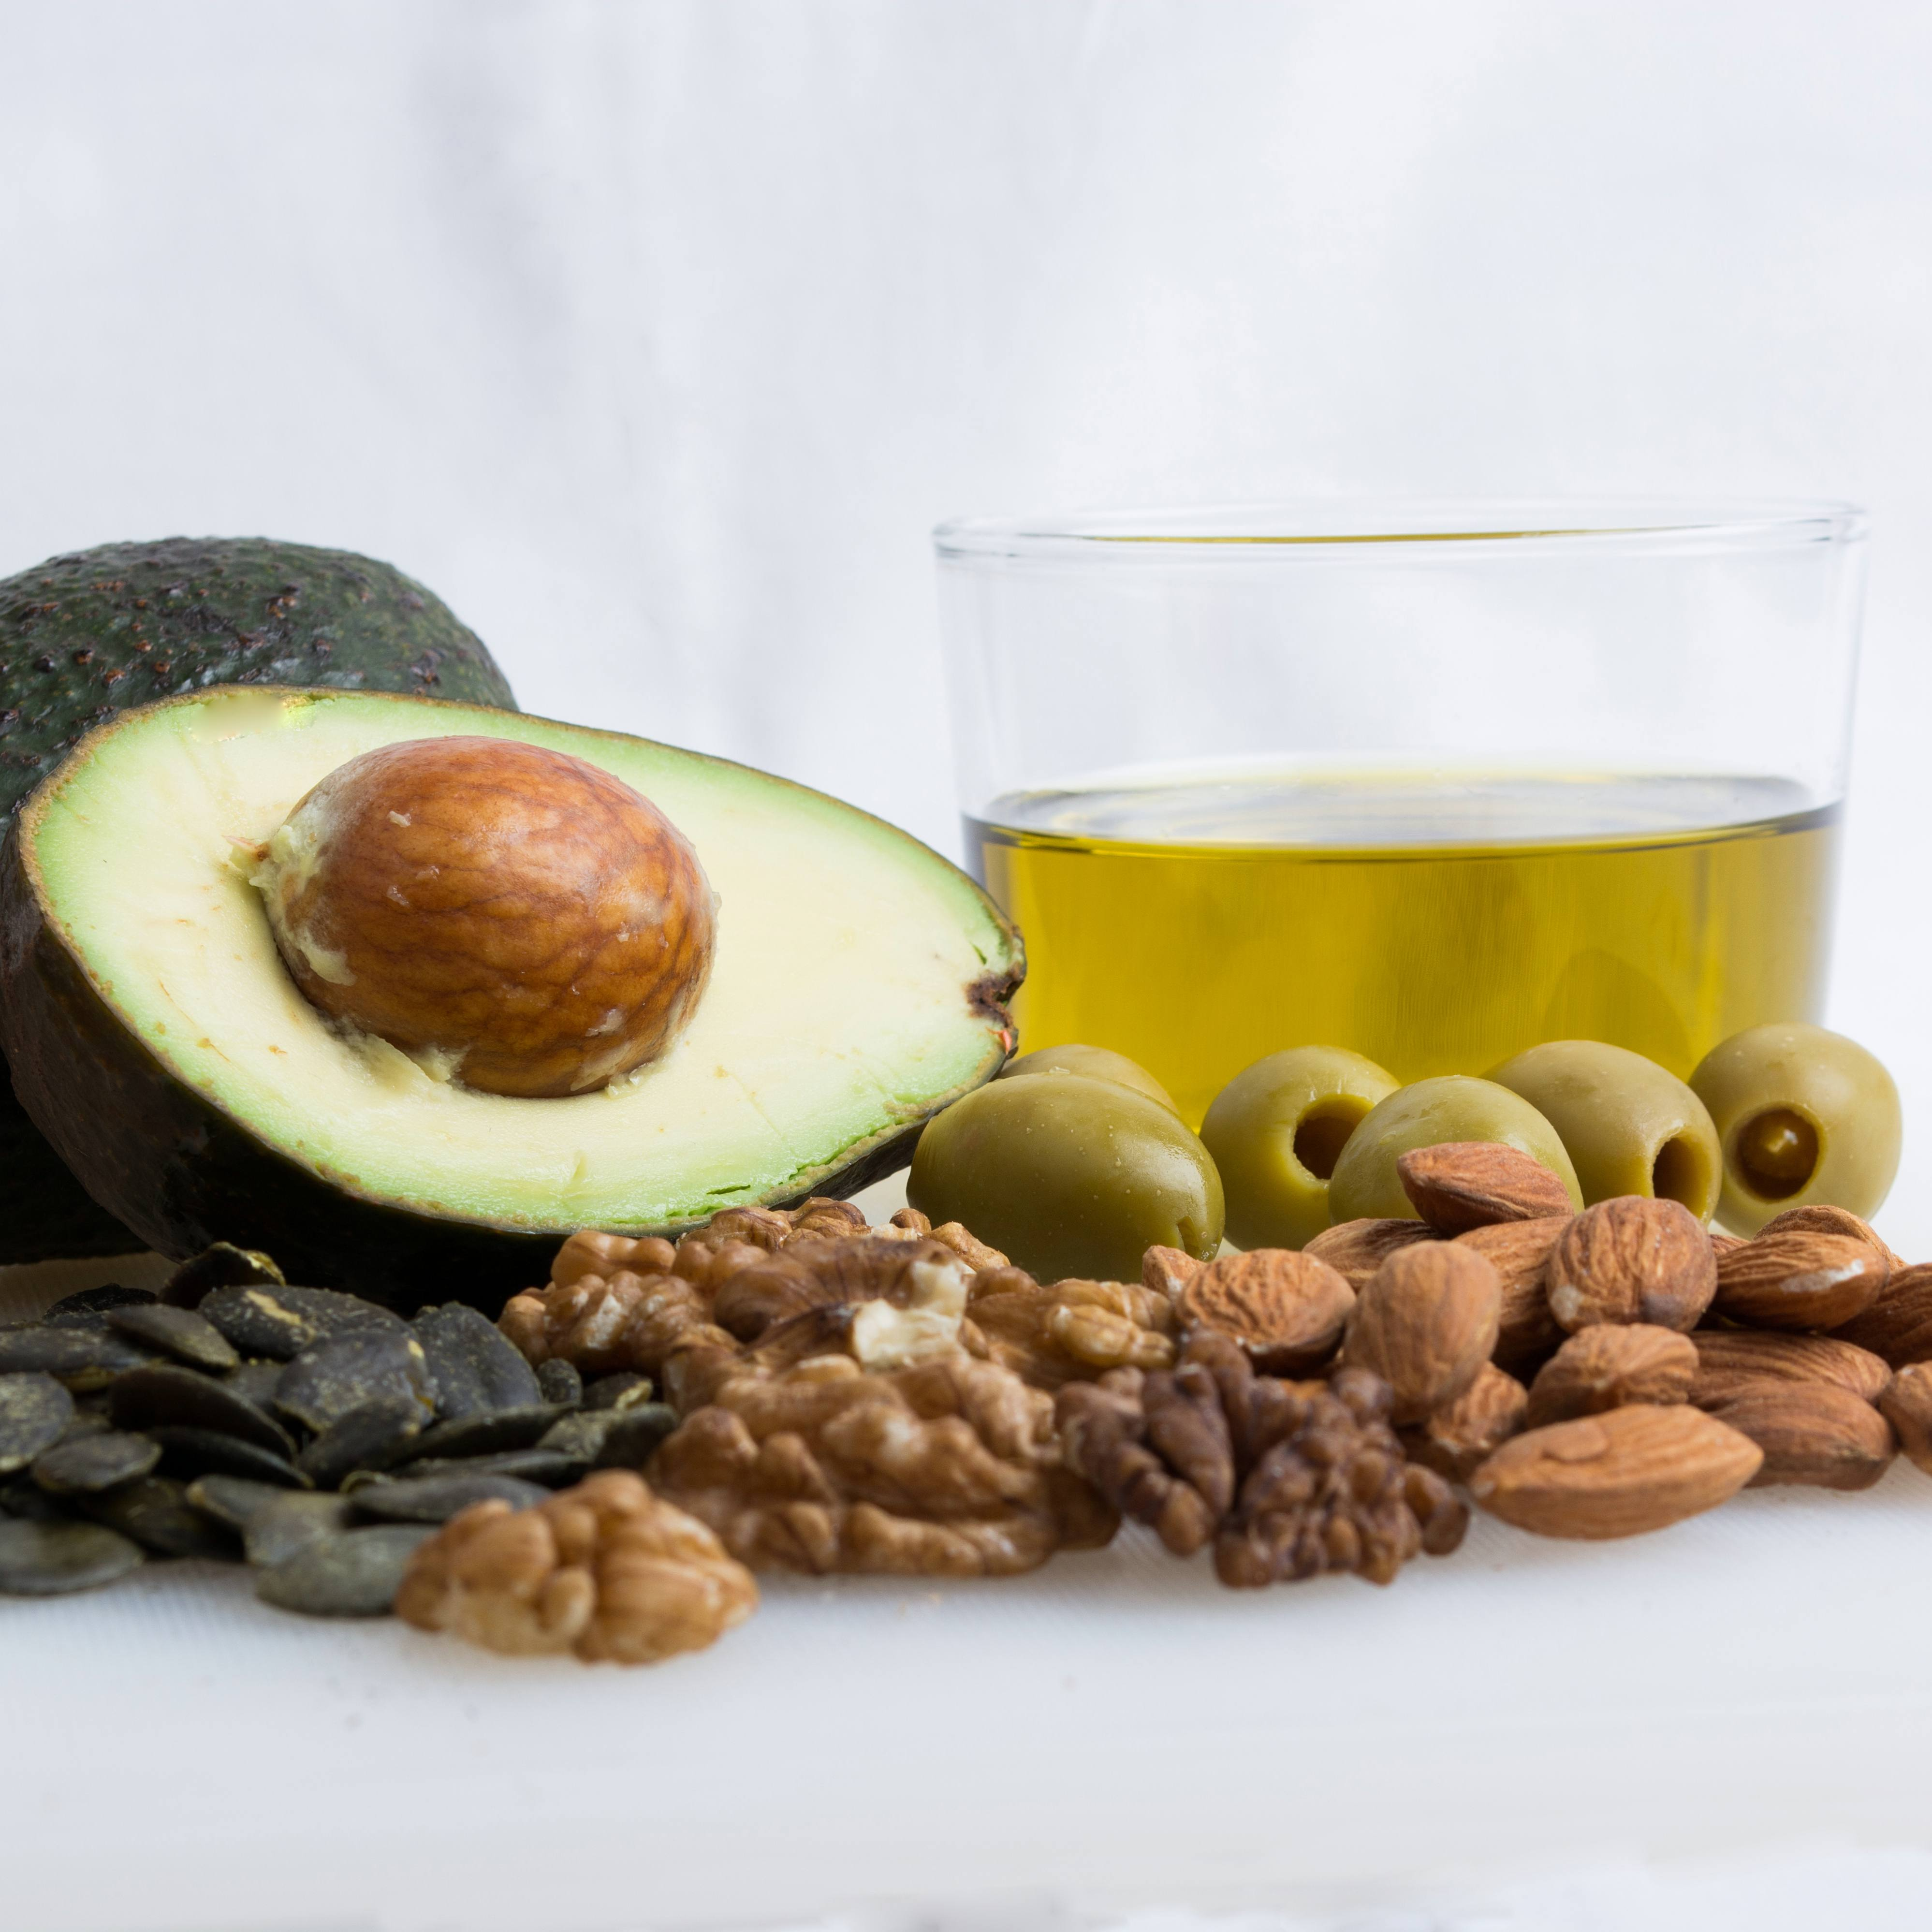 healthy fat foods, avocado, olive oil and nuts